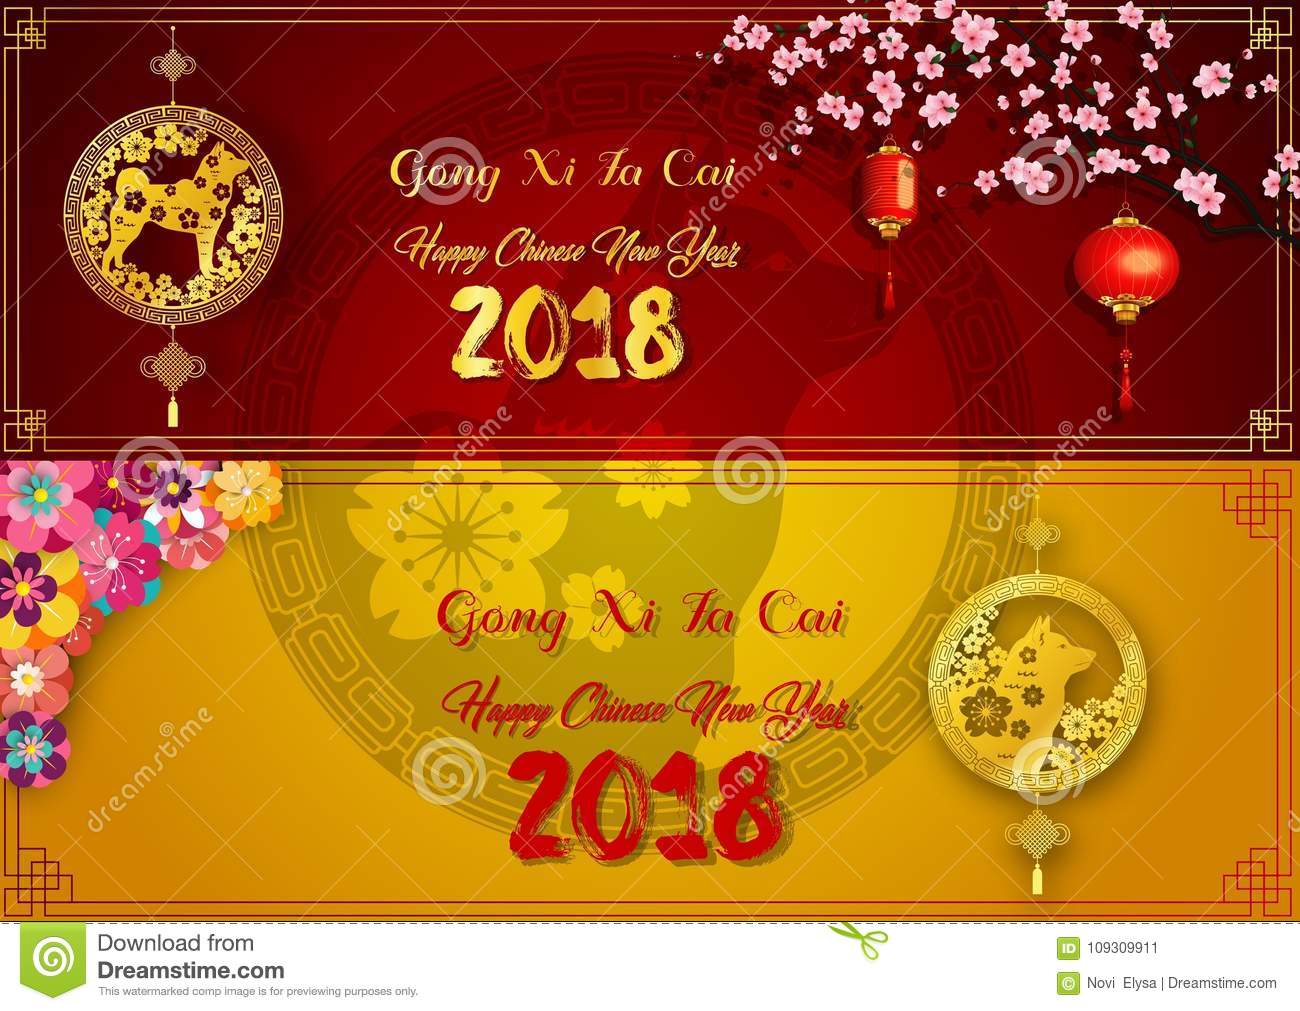 download horizontal banners set with 2018 chinese new year elements year of the dog gold